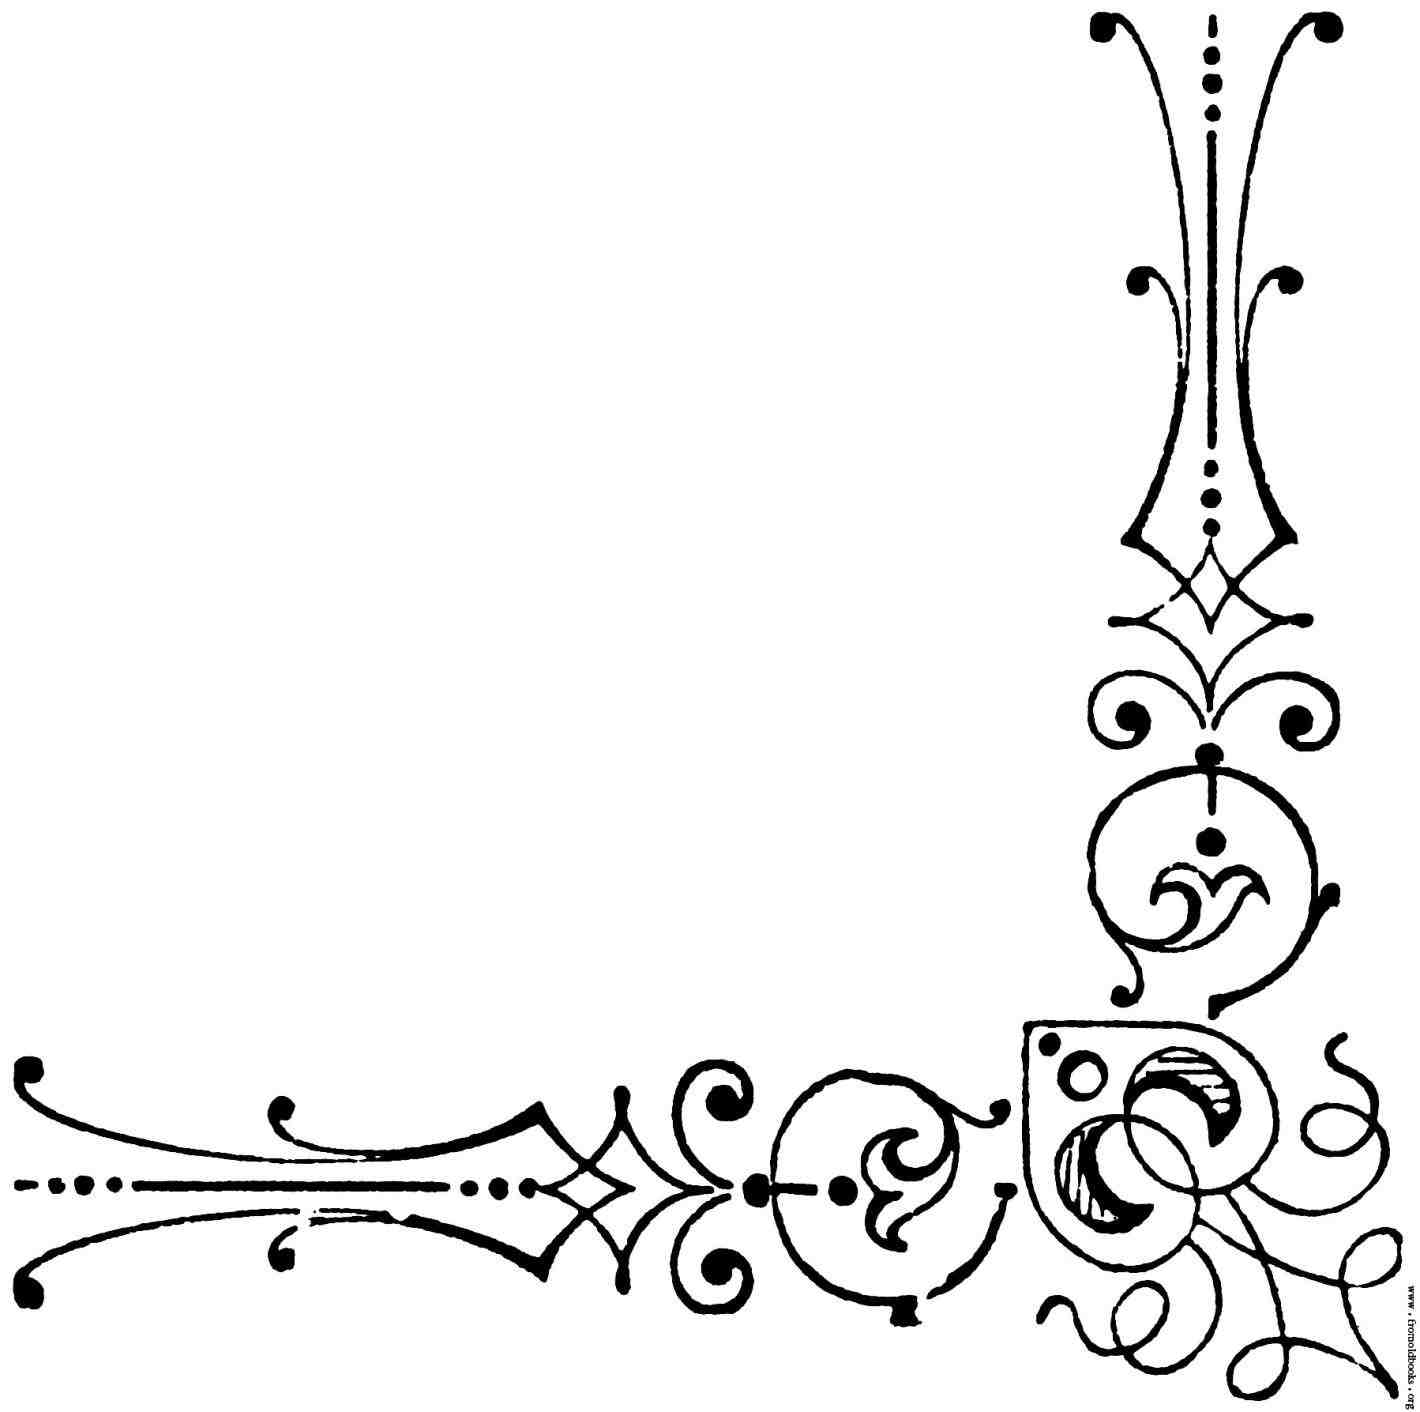 Wedding design clipart free download image black and white download Free Stationary Borders Clipart   Free download best Free ... image black and white download